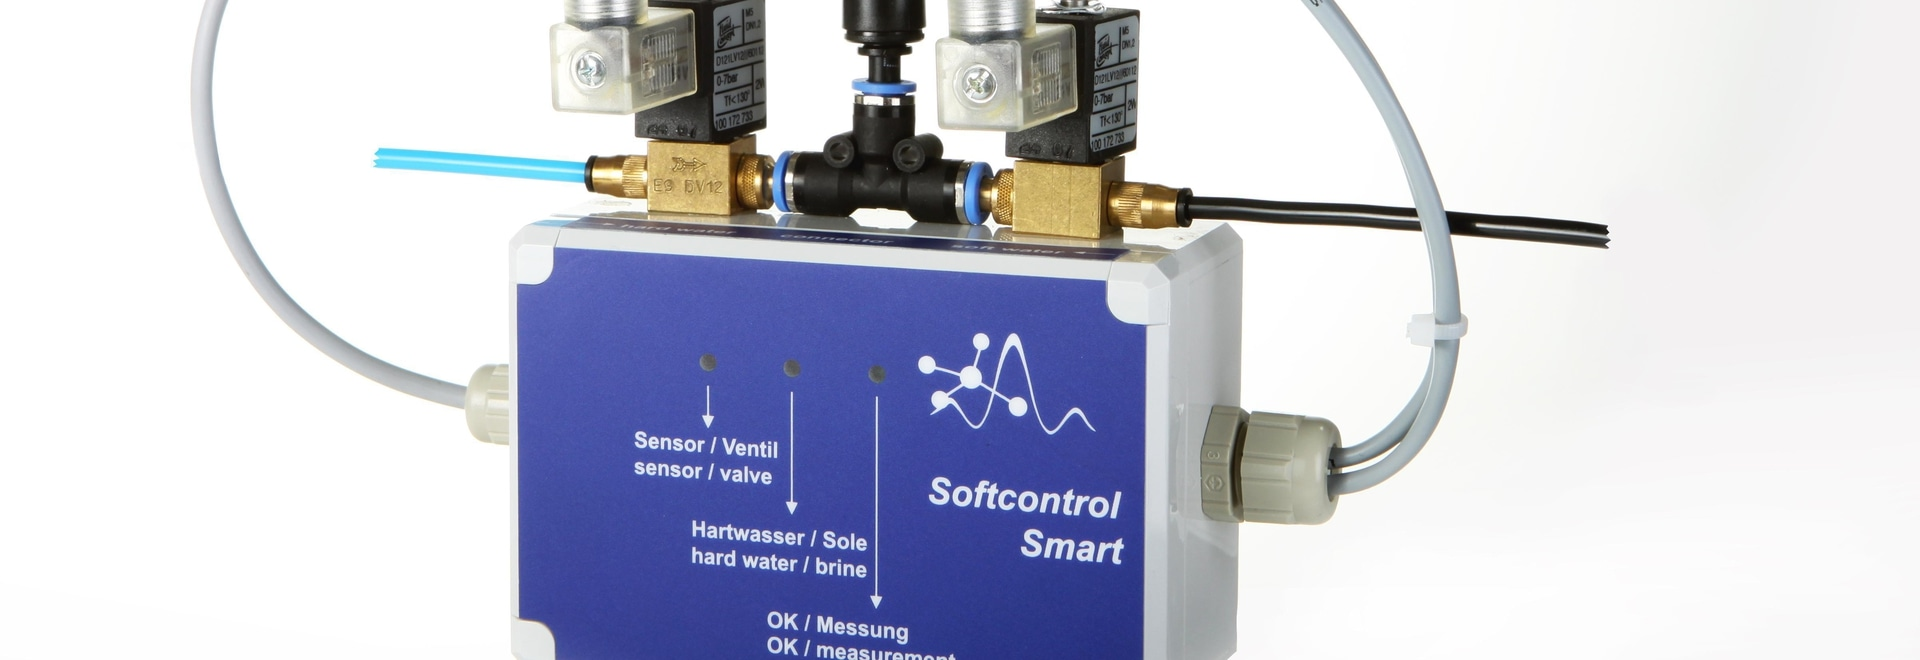 Softcontrol Smart for online water hardness monitoring